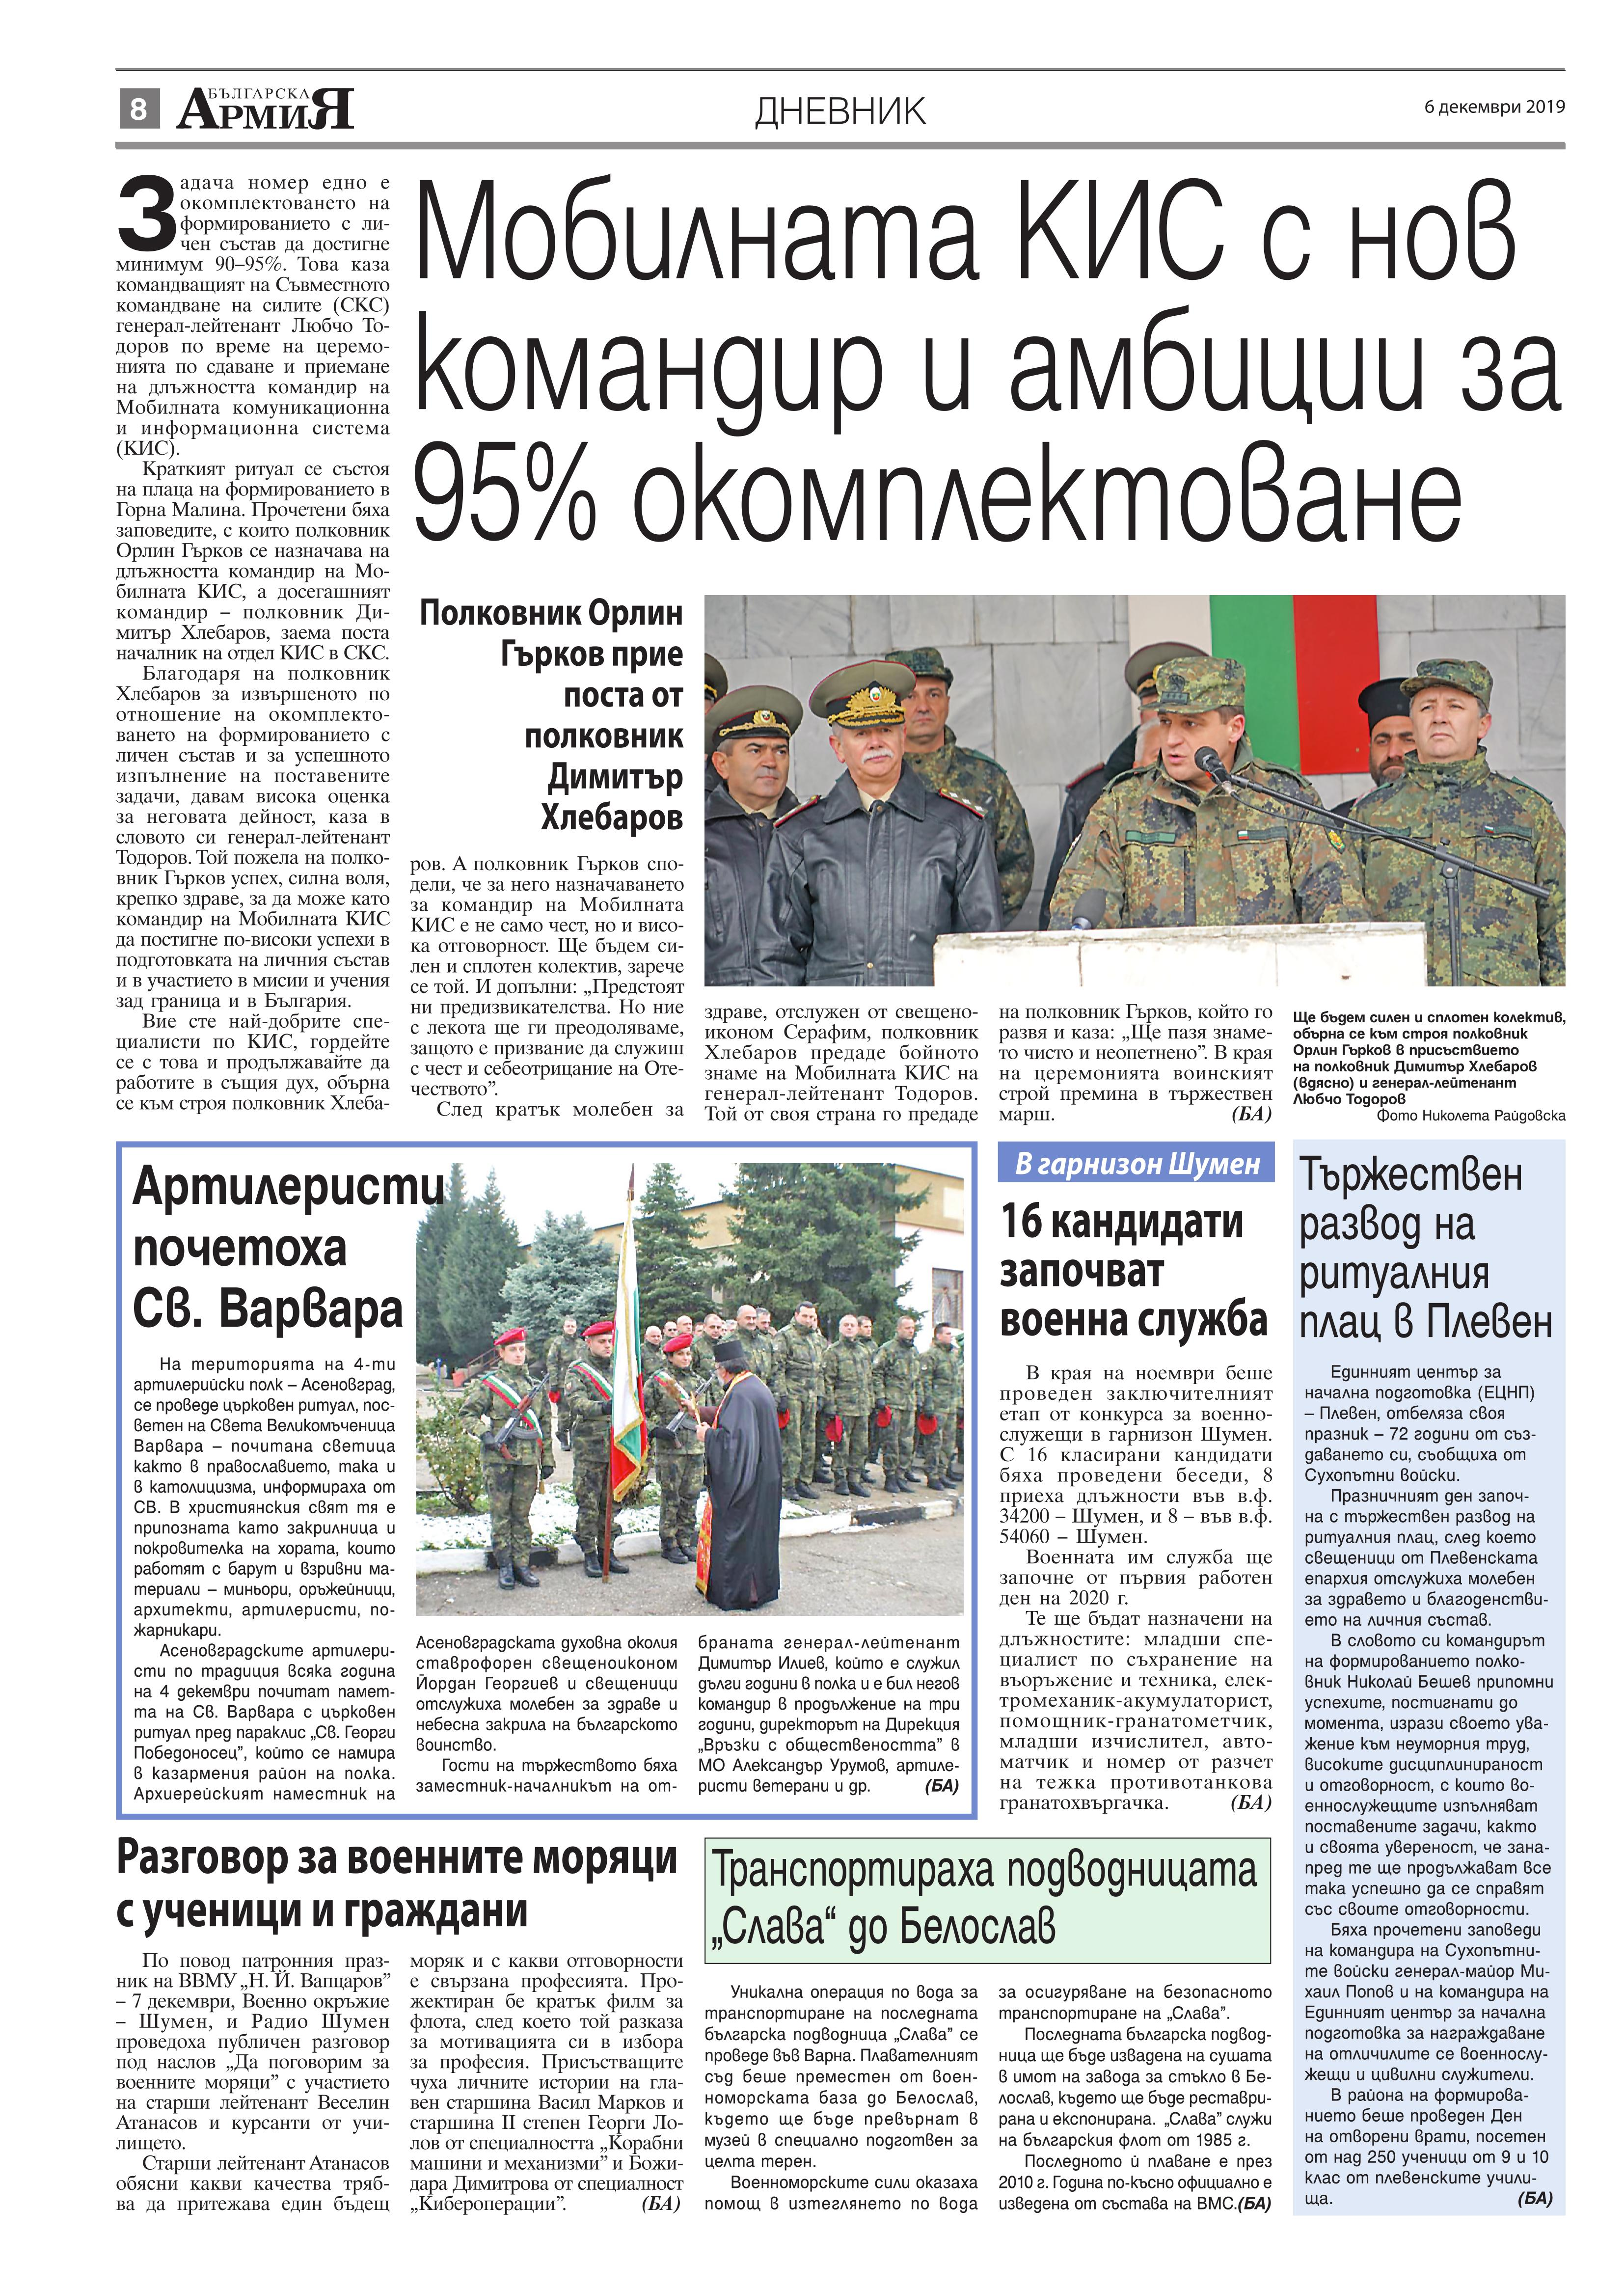 https://www.armymedia.bg/wp-content/uploads/2015/06/08.page1_-115.jpg